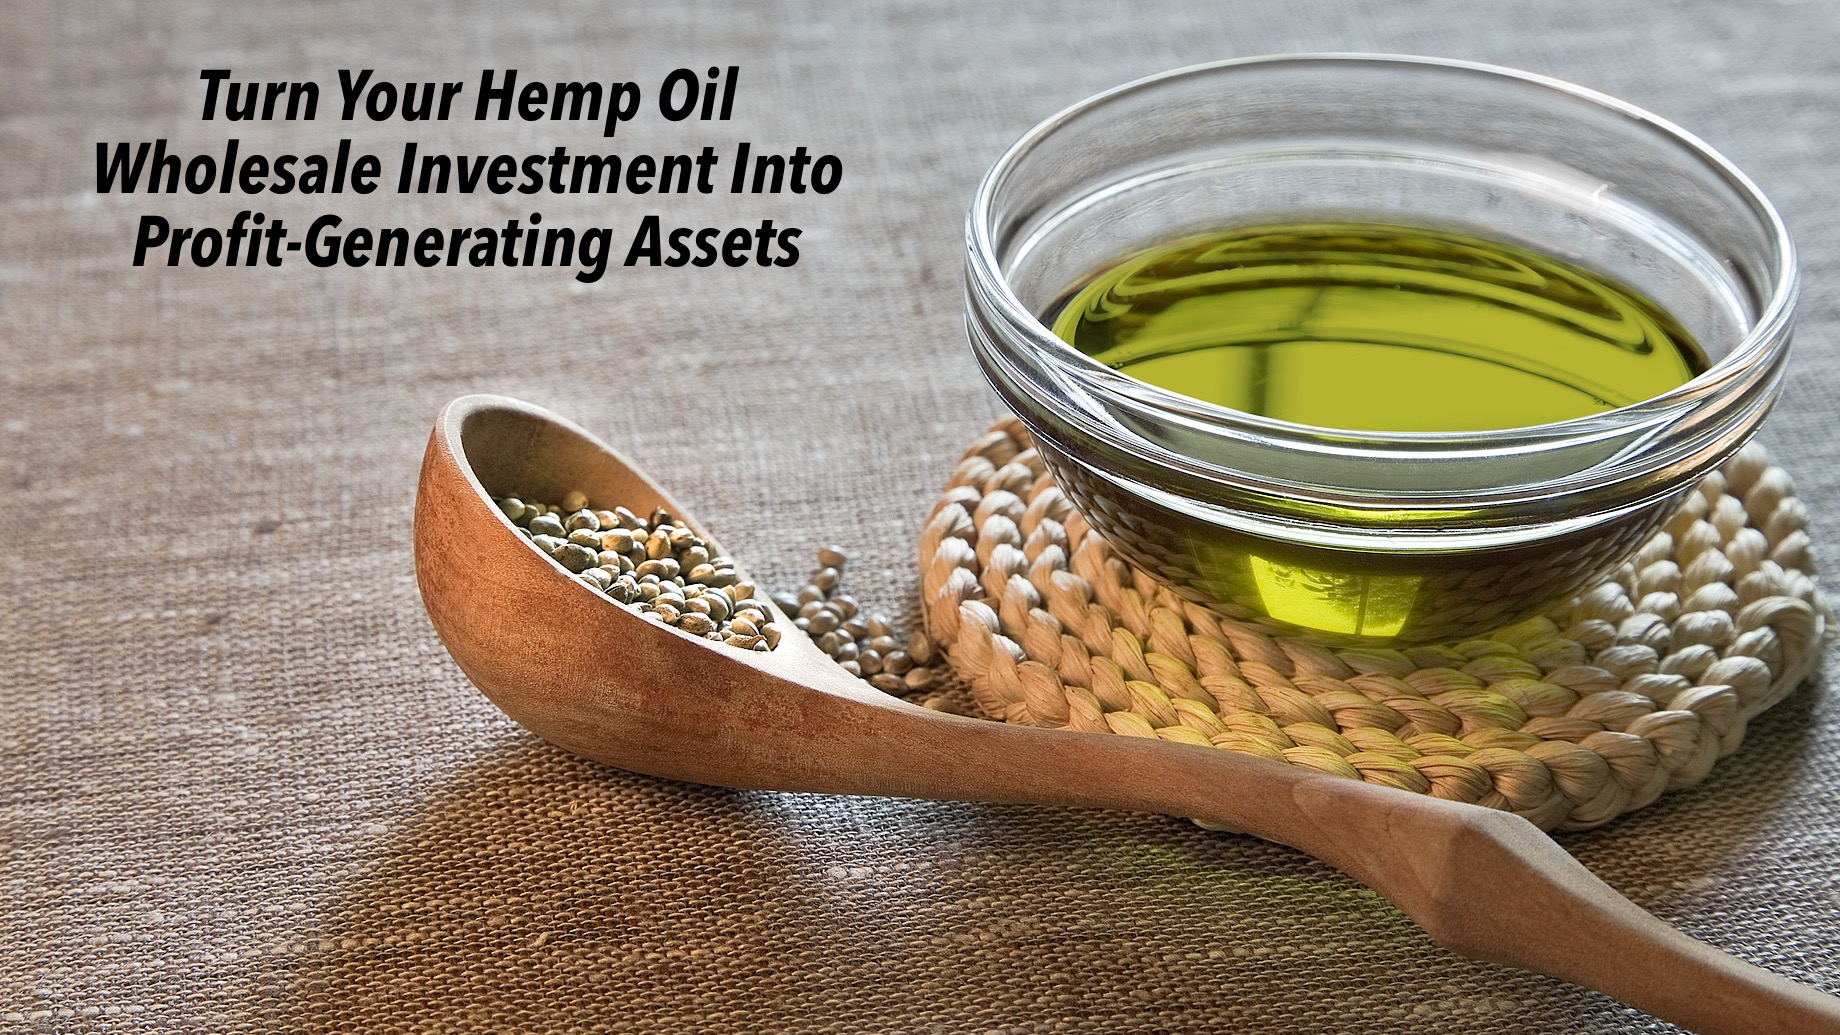 Turn Your Hemp Oil Wholesale Investment Into Profit-Generating Assets